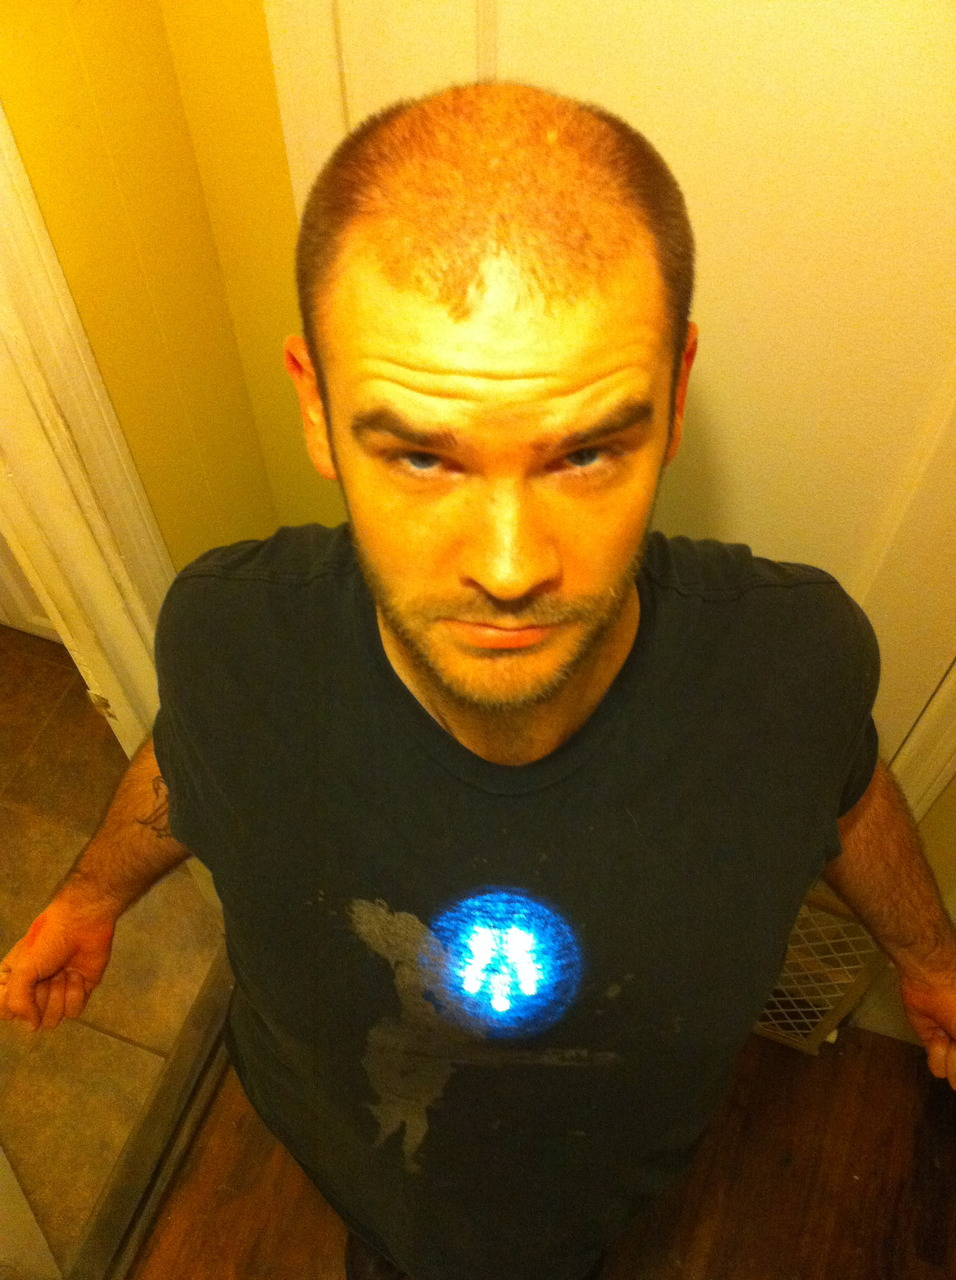 Attic light? What attic light? I AM IRON MAN.